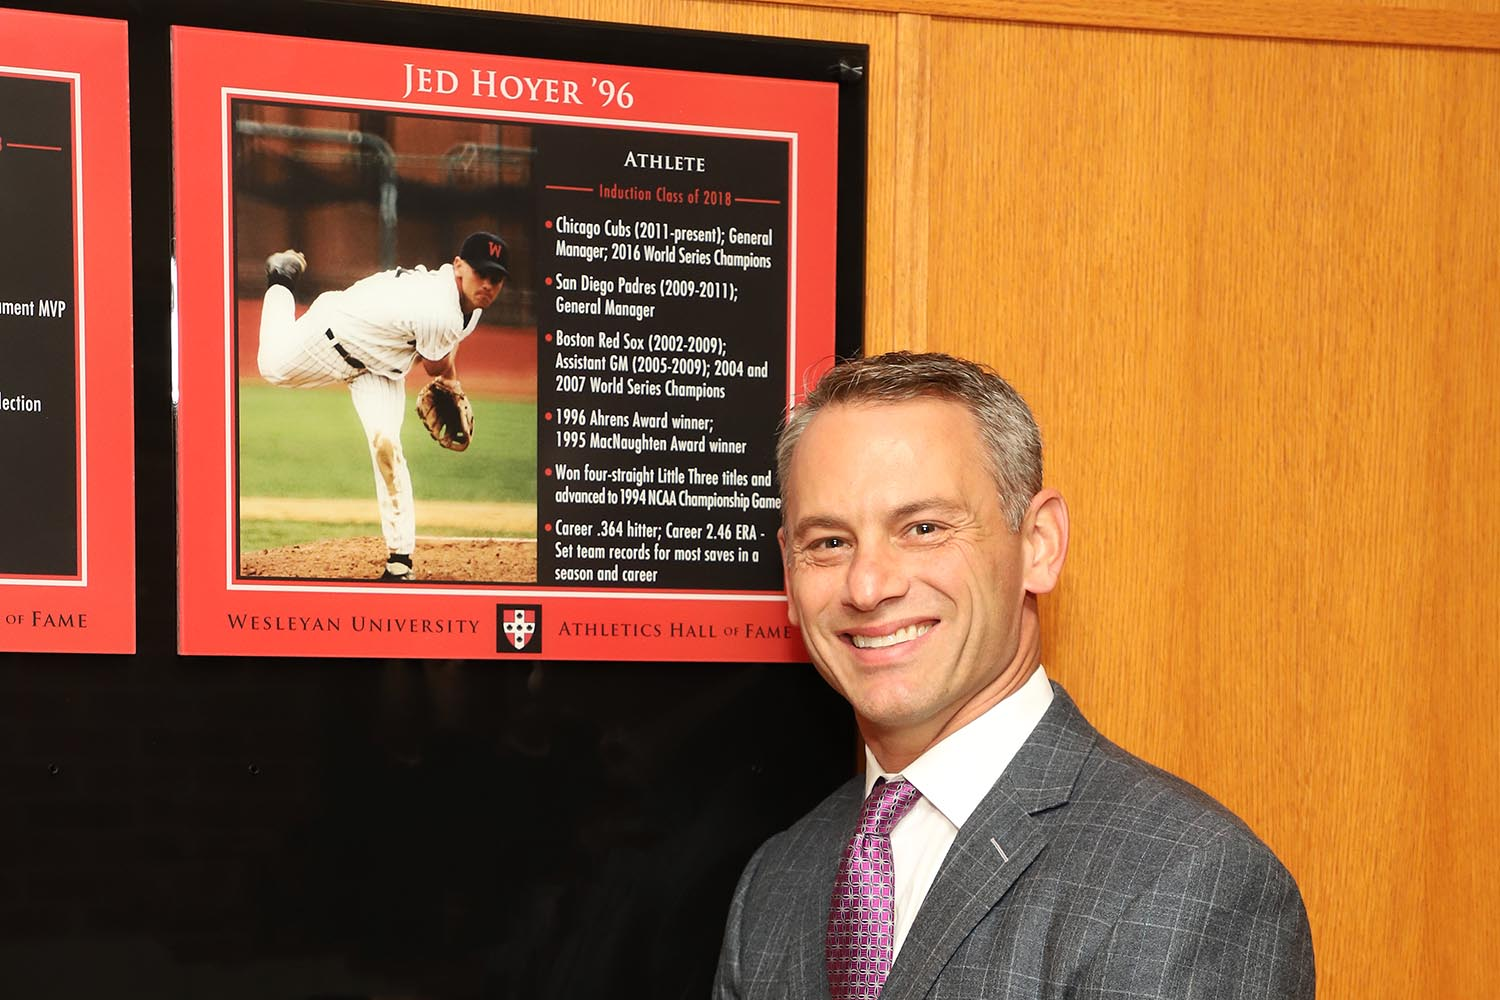 Jed Hoyer '96 (Baseball)